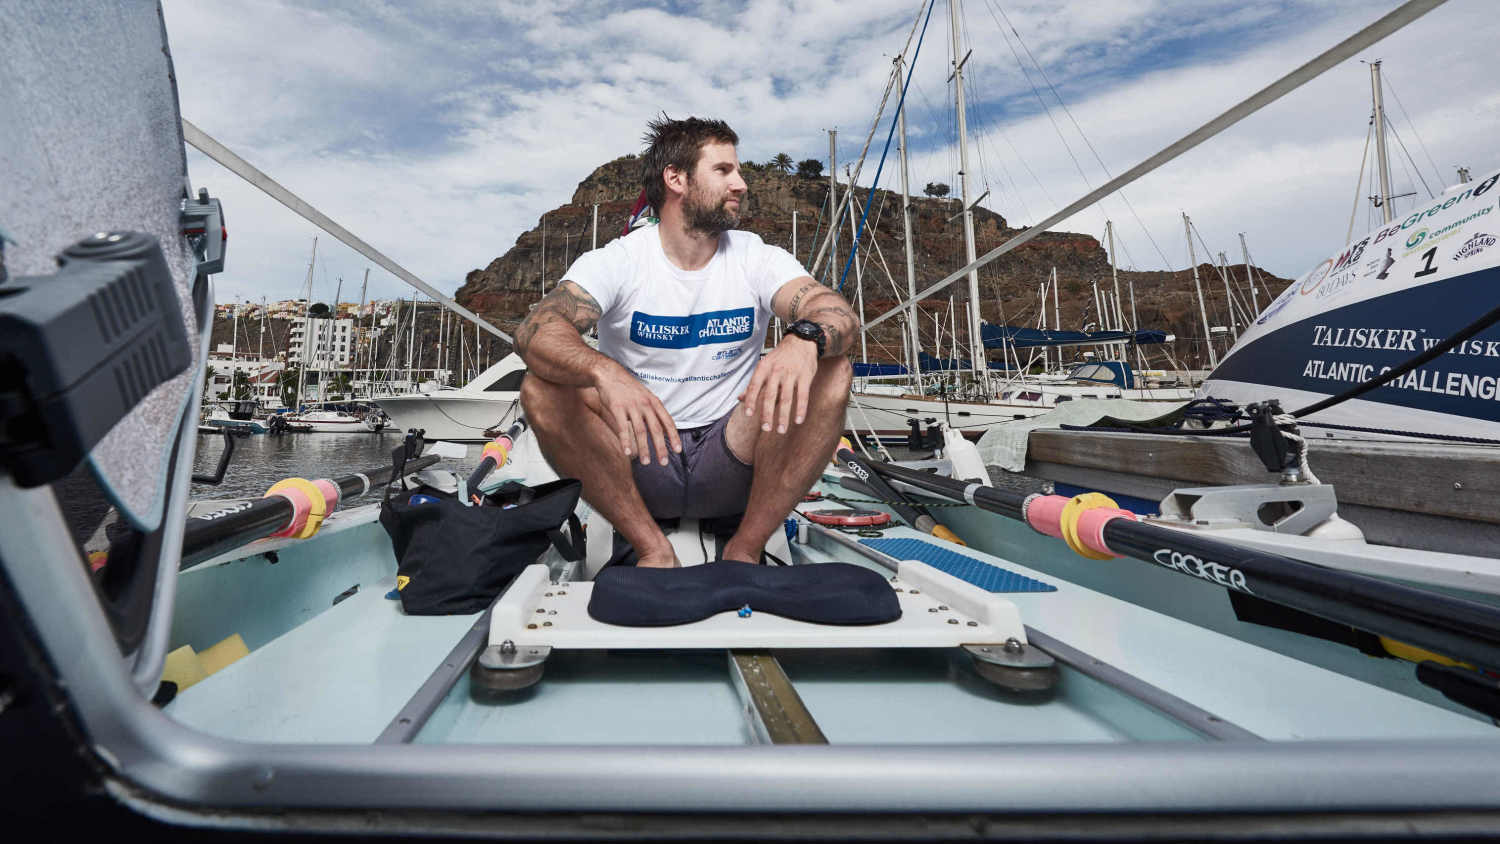 Ex-heroin addict: World's toughest rowing race is 'just for fun'